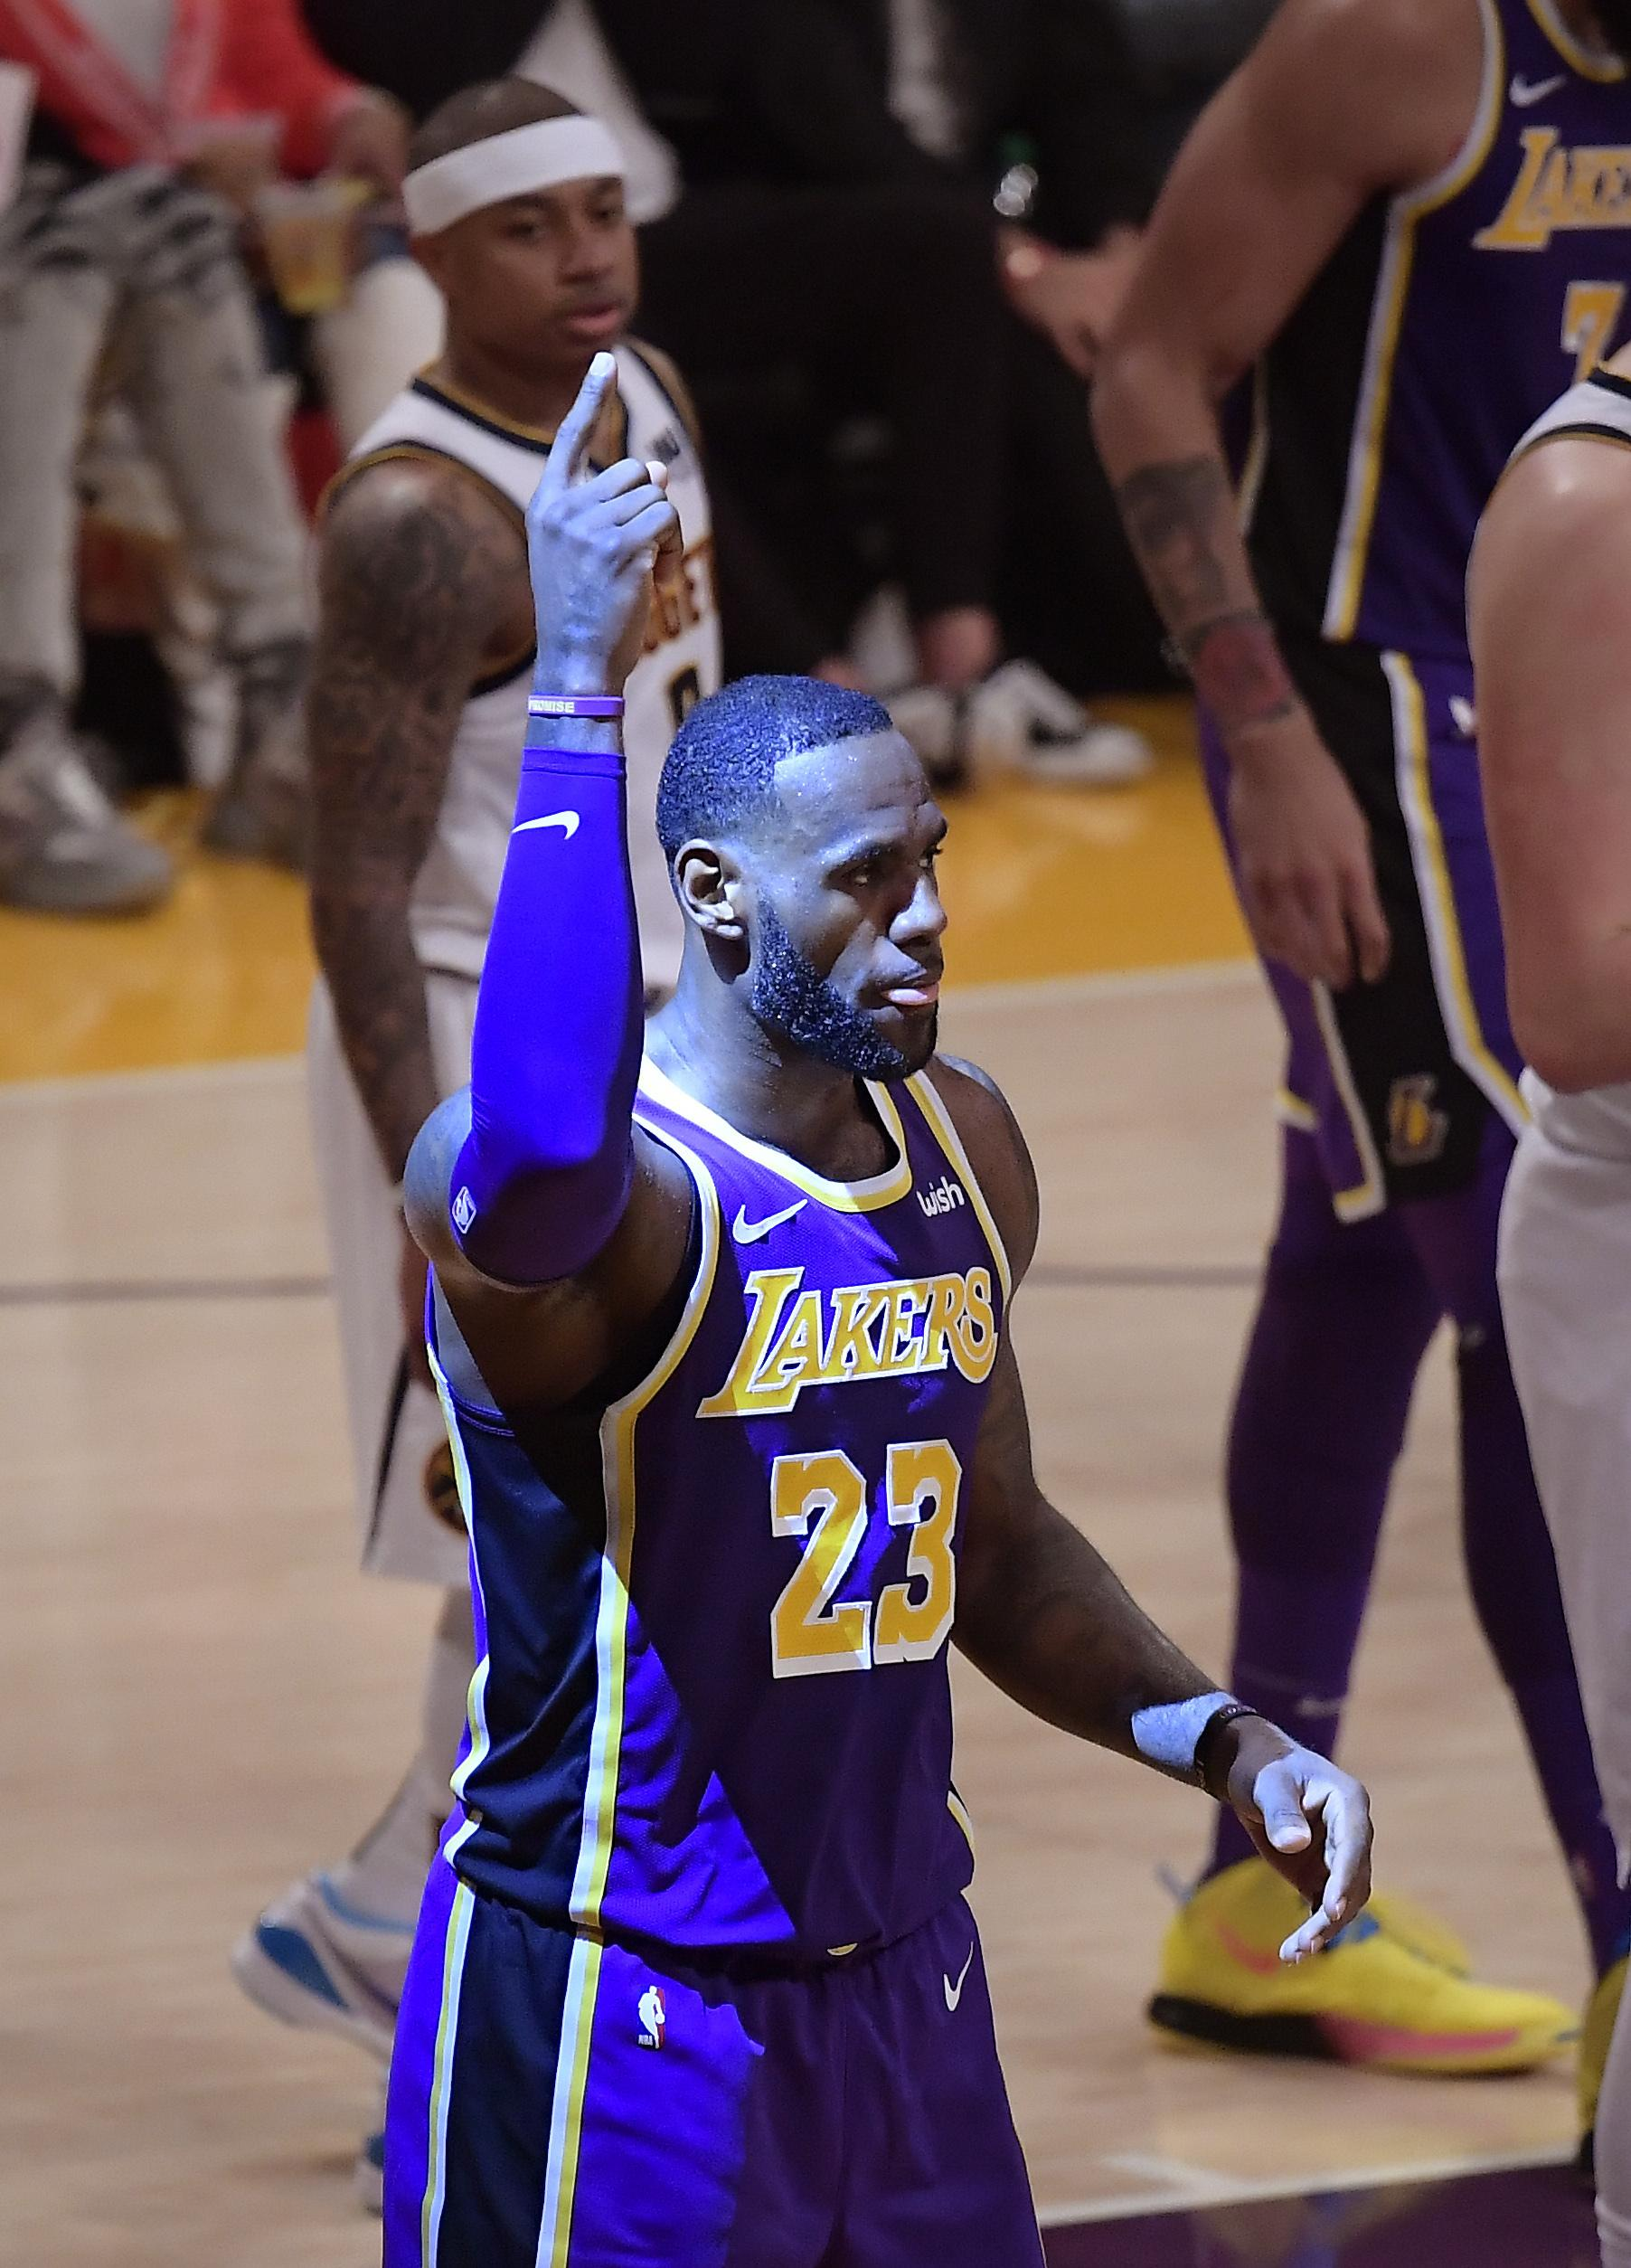 d4928ae3680c4 Los Angeles Lakers forward LeBron James gestures after scoring during the  first half of the team s